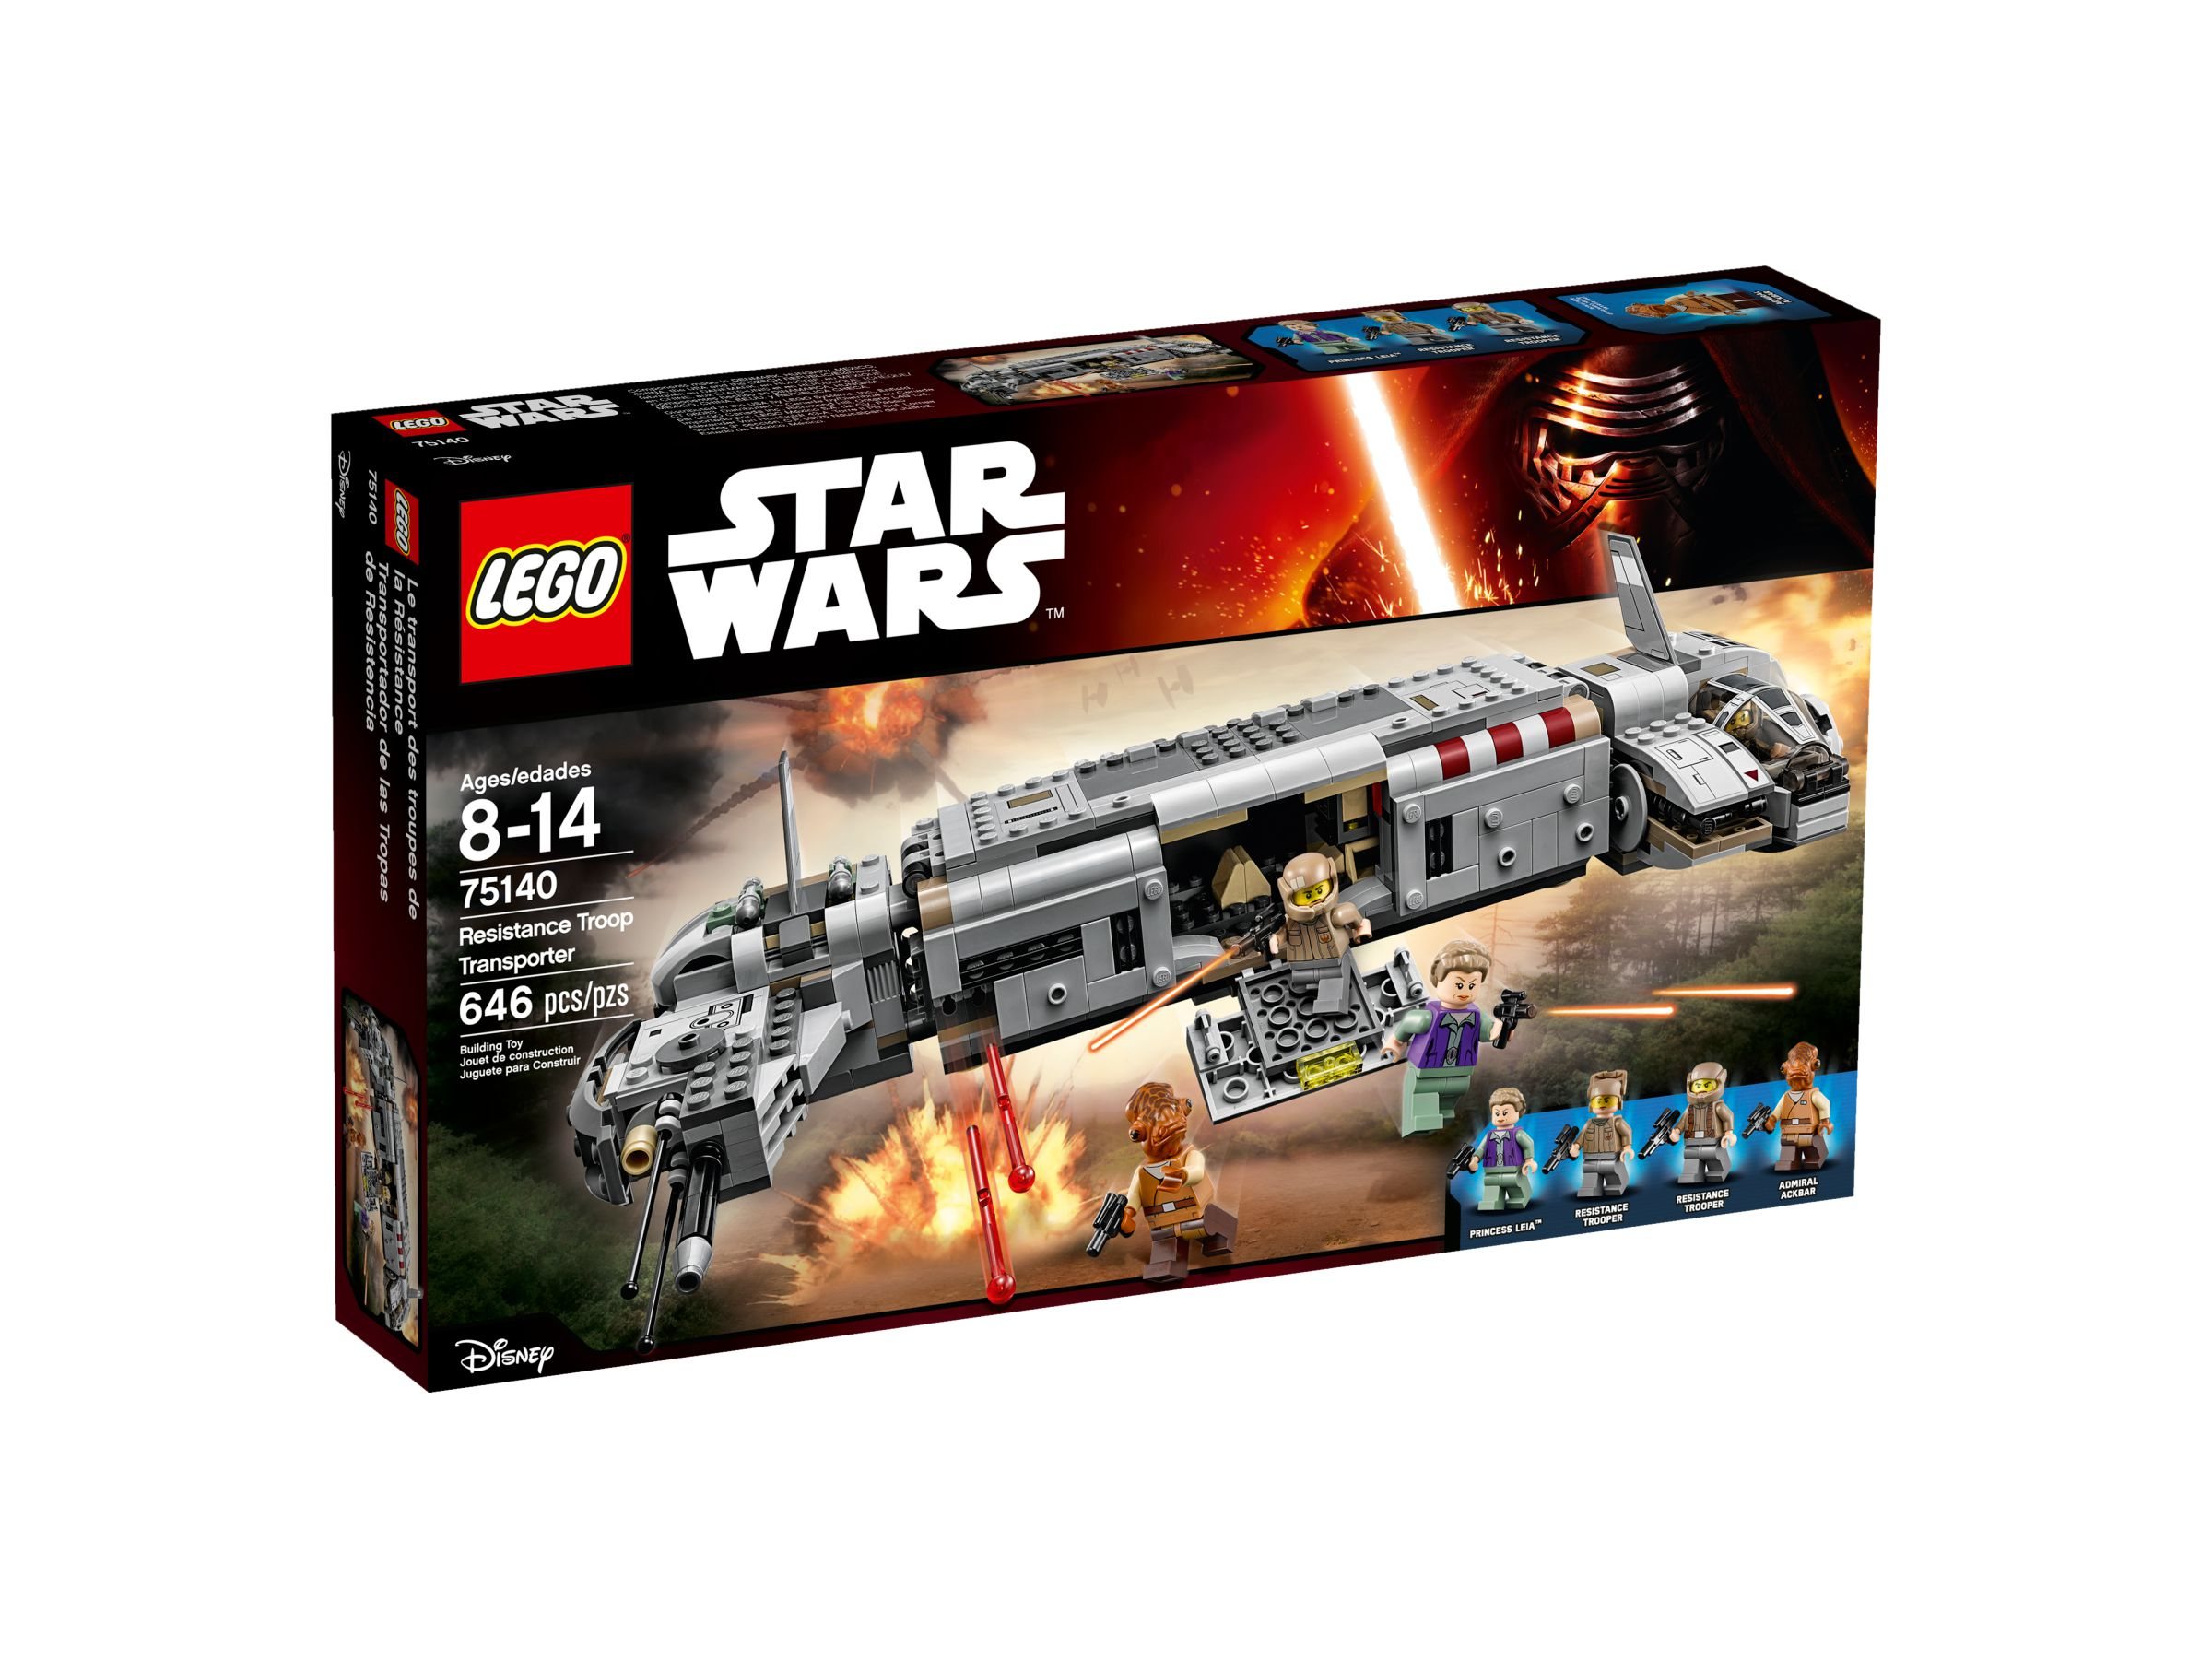 LEGO Star Wars 75140 Resistance Troop Transporter LEGO_75140_alt1.jpg